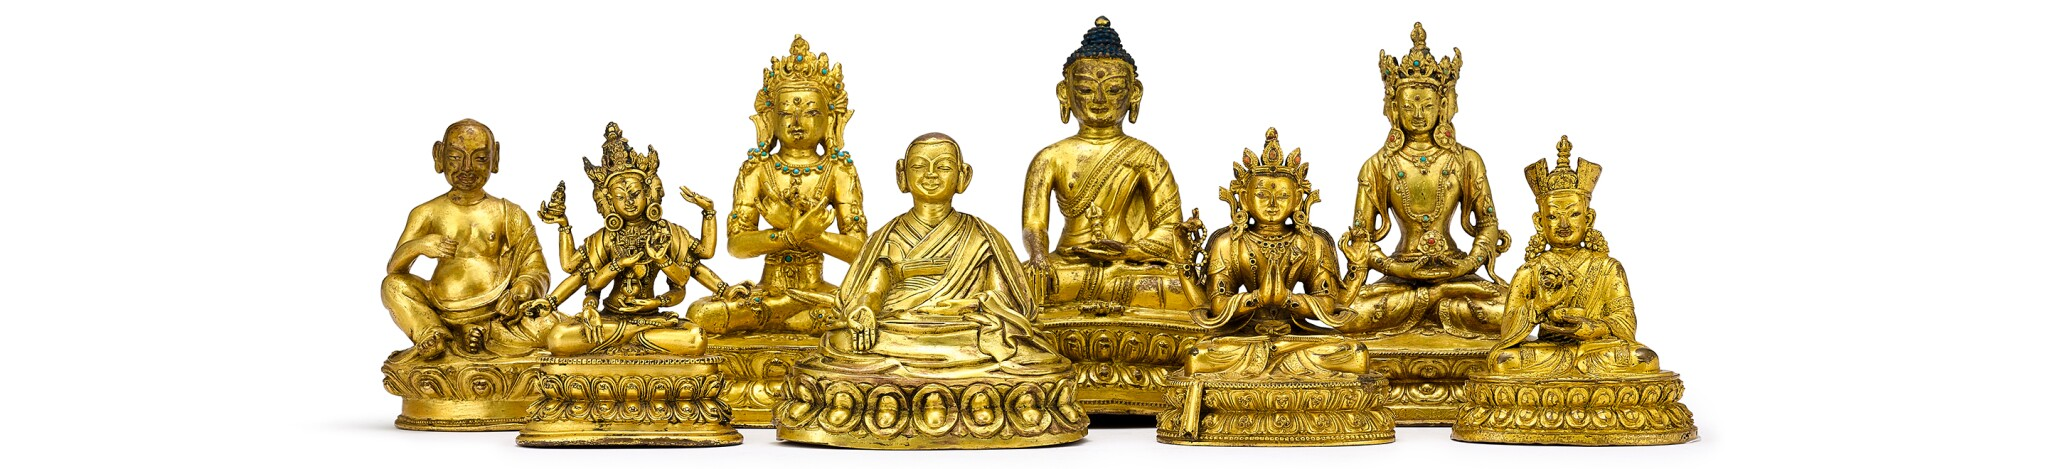 A Selection of Buddhist Art from the Collection of Cheng Huan 清洪佛教藝術品珍藏